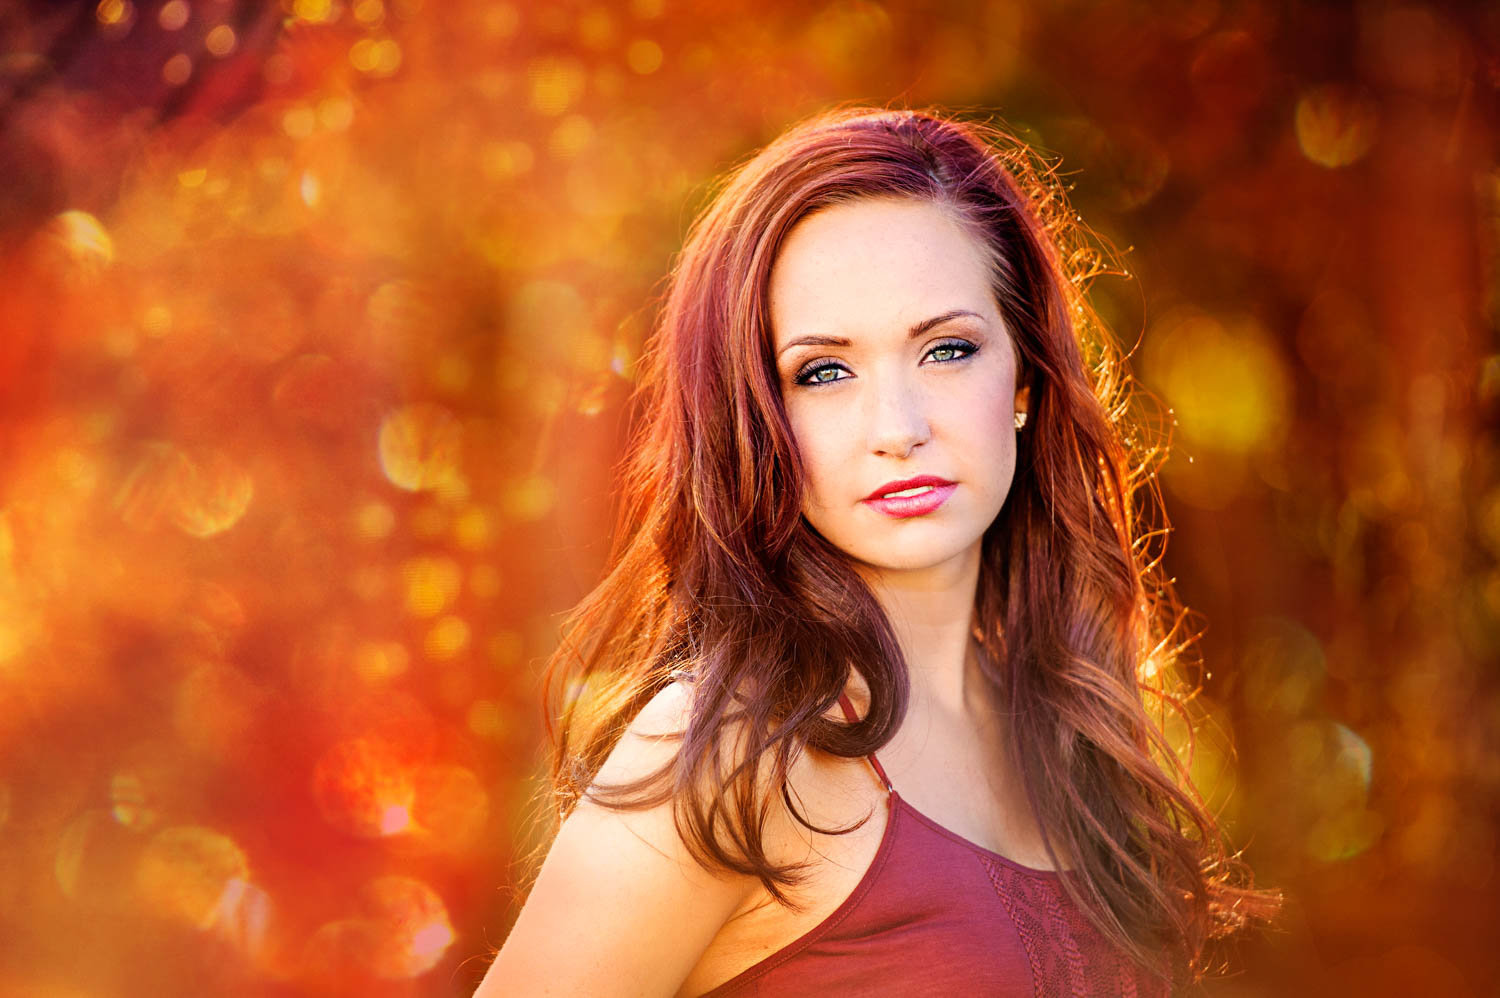 Sunset senior picture of girl with red hair